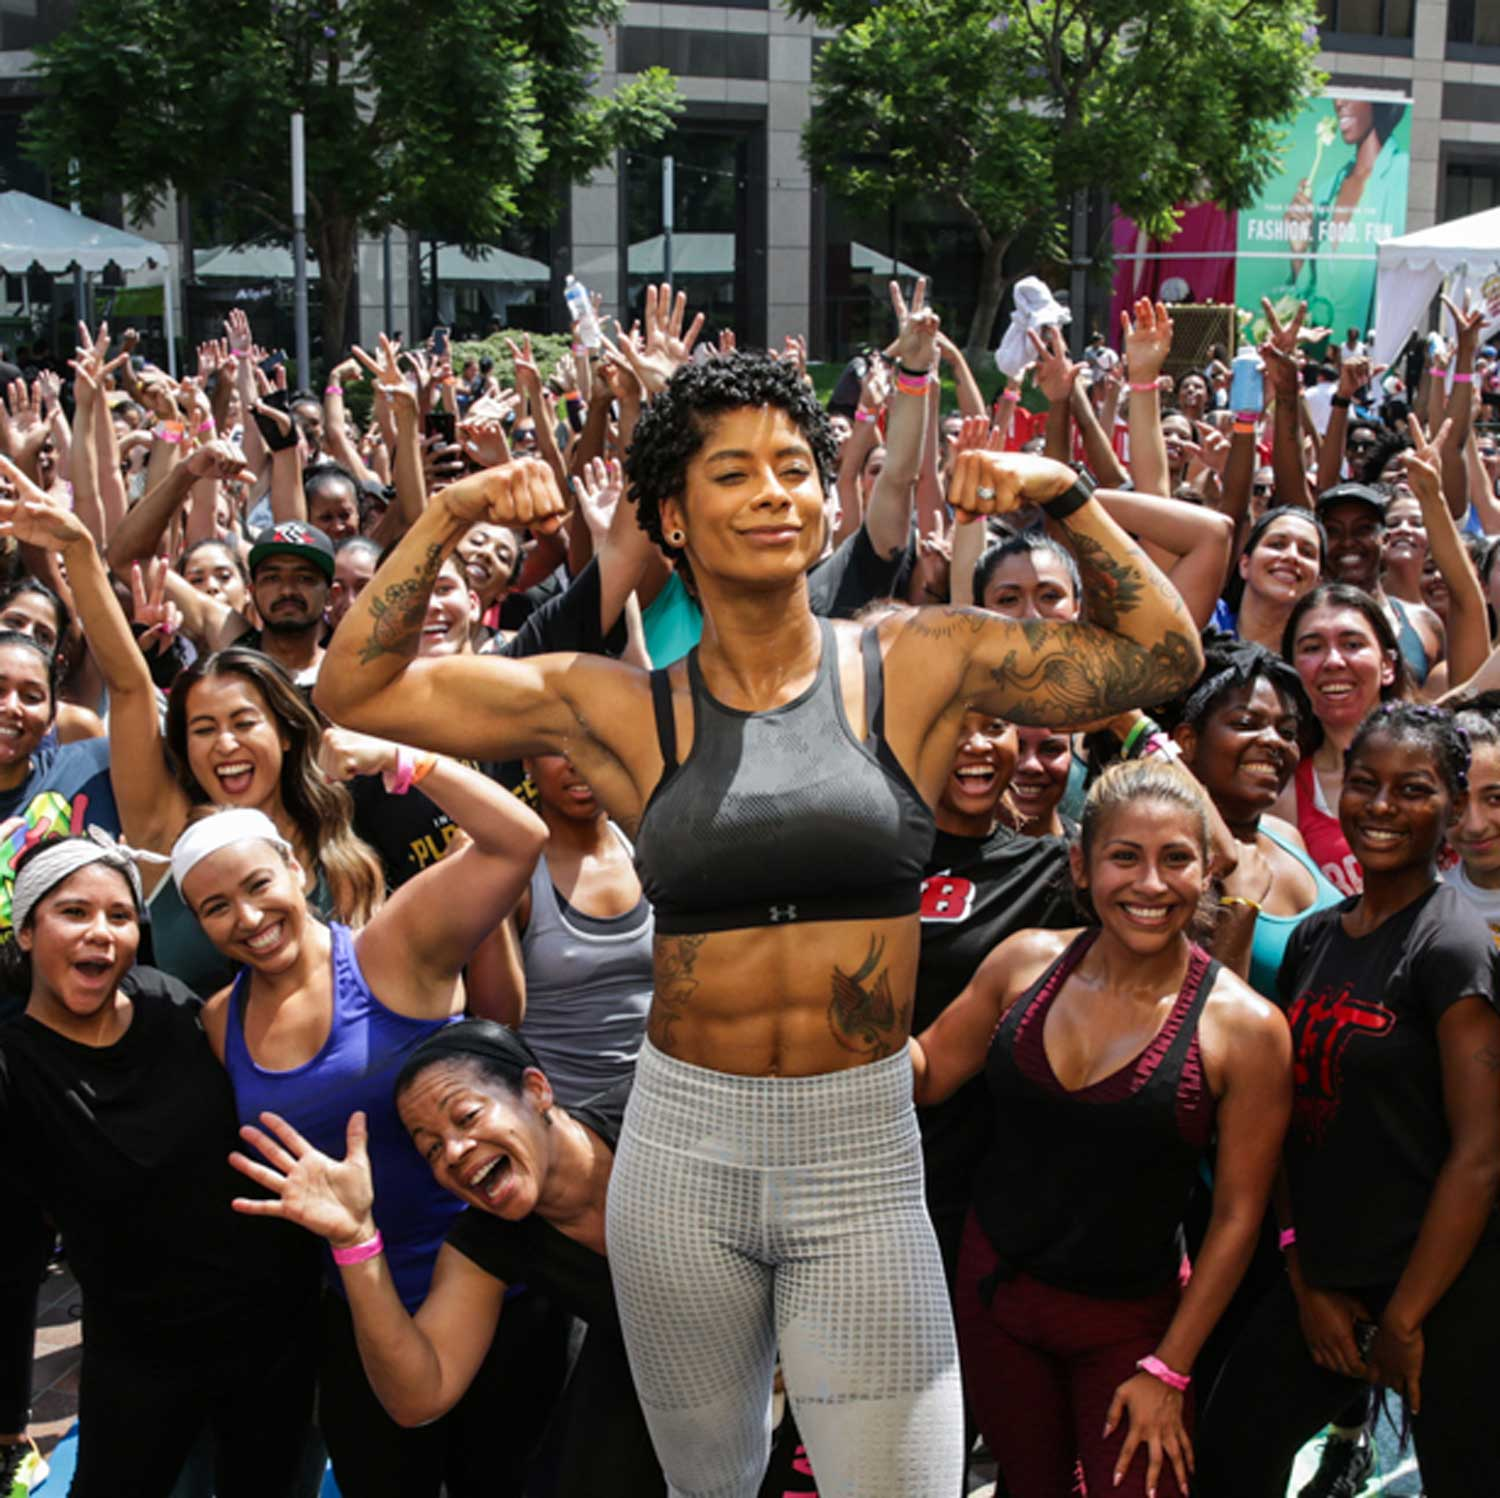 Image of Massy Arias at Fitness Event